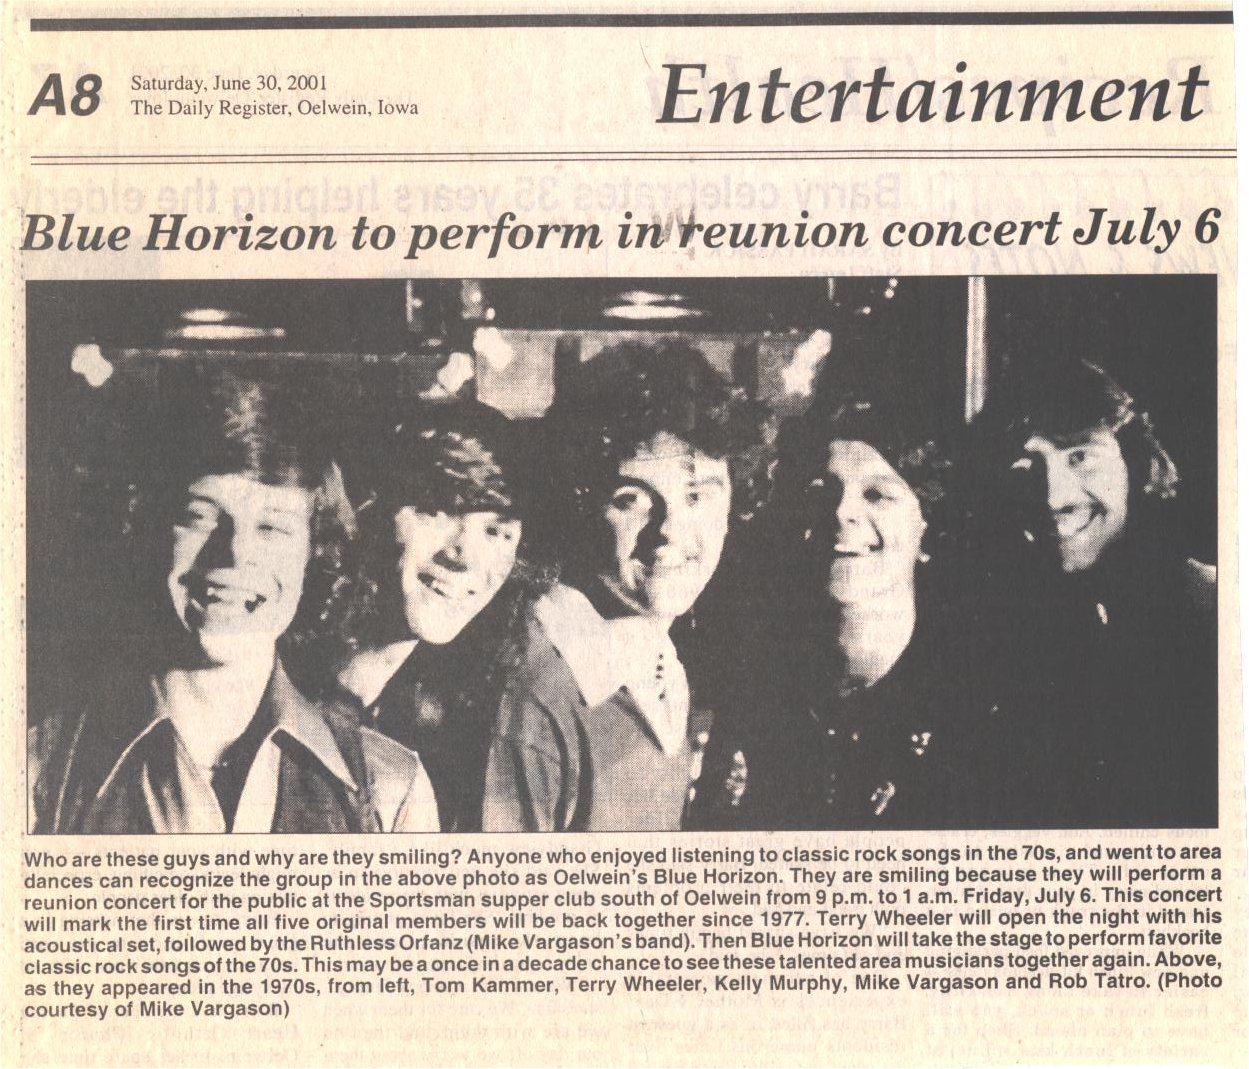 BHreunion2001newspaperArticlephotoOnly.jpg (302155 bytes)